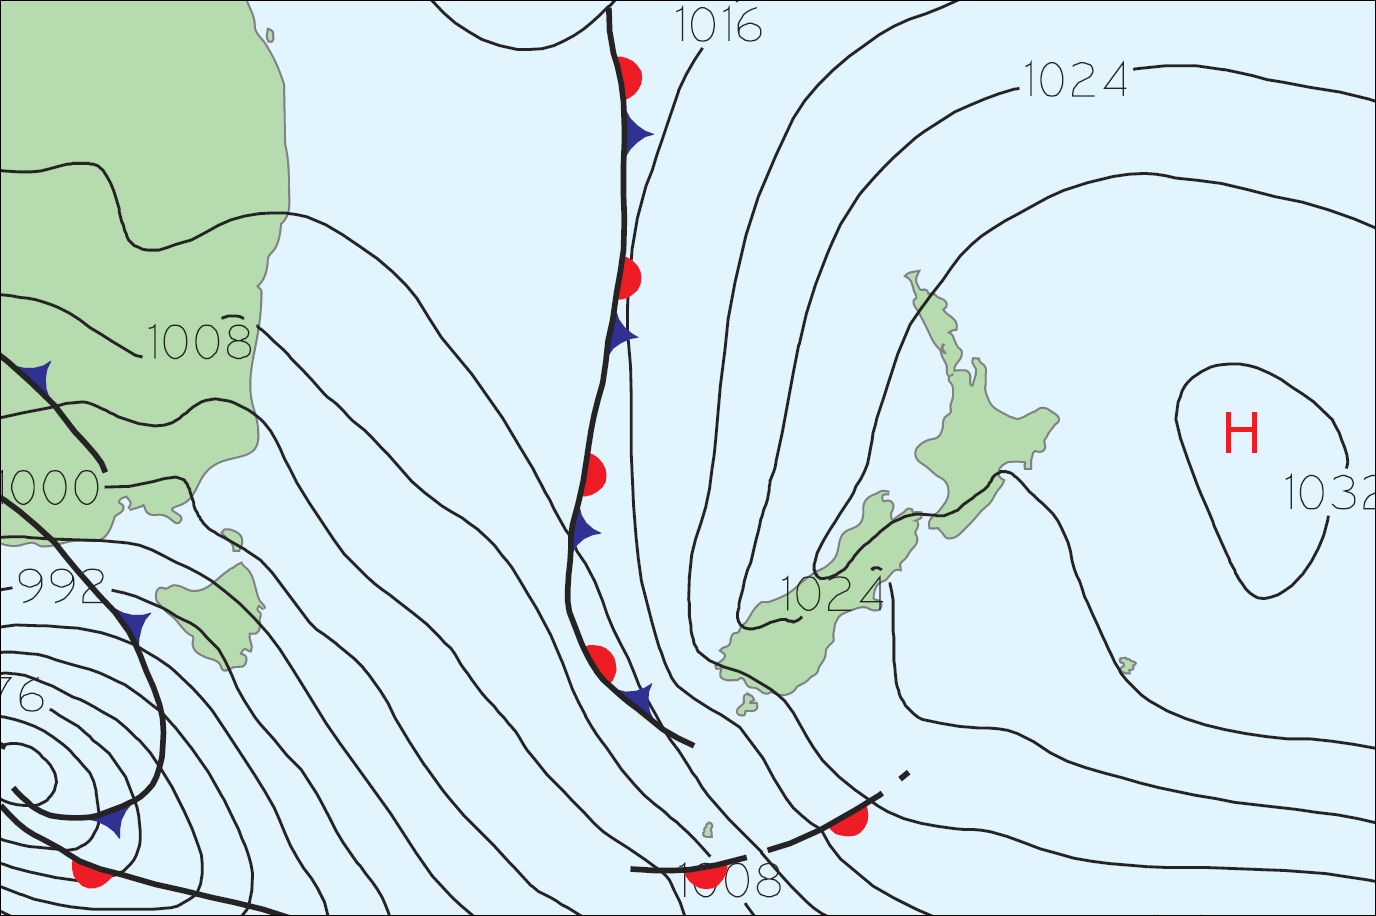 Mean Sea Level Pressure Analysis at 6am Tuesday